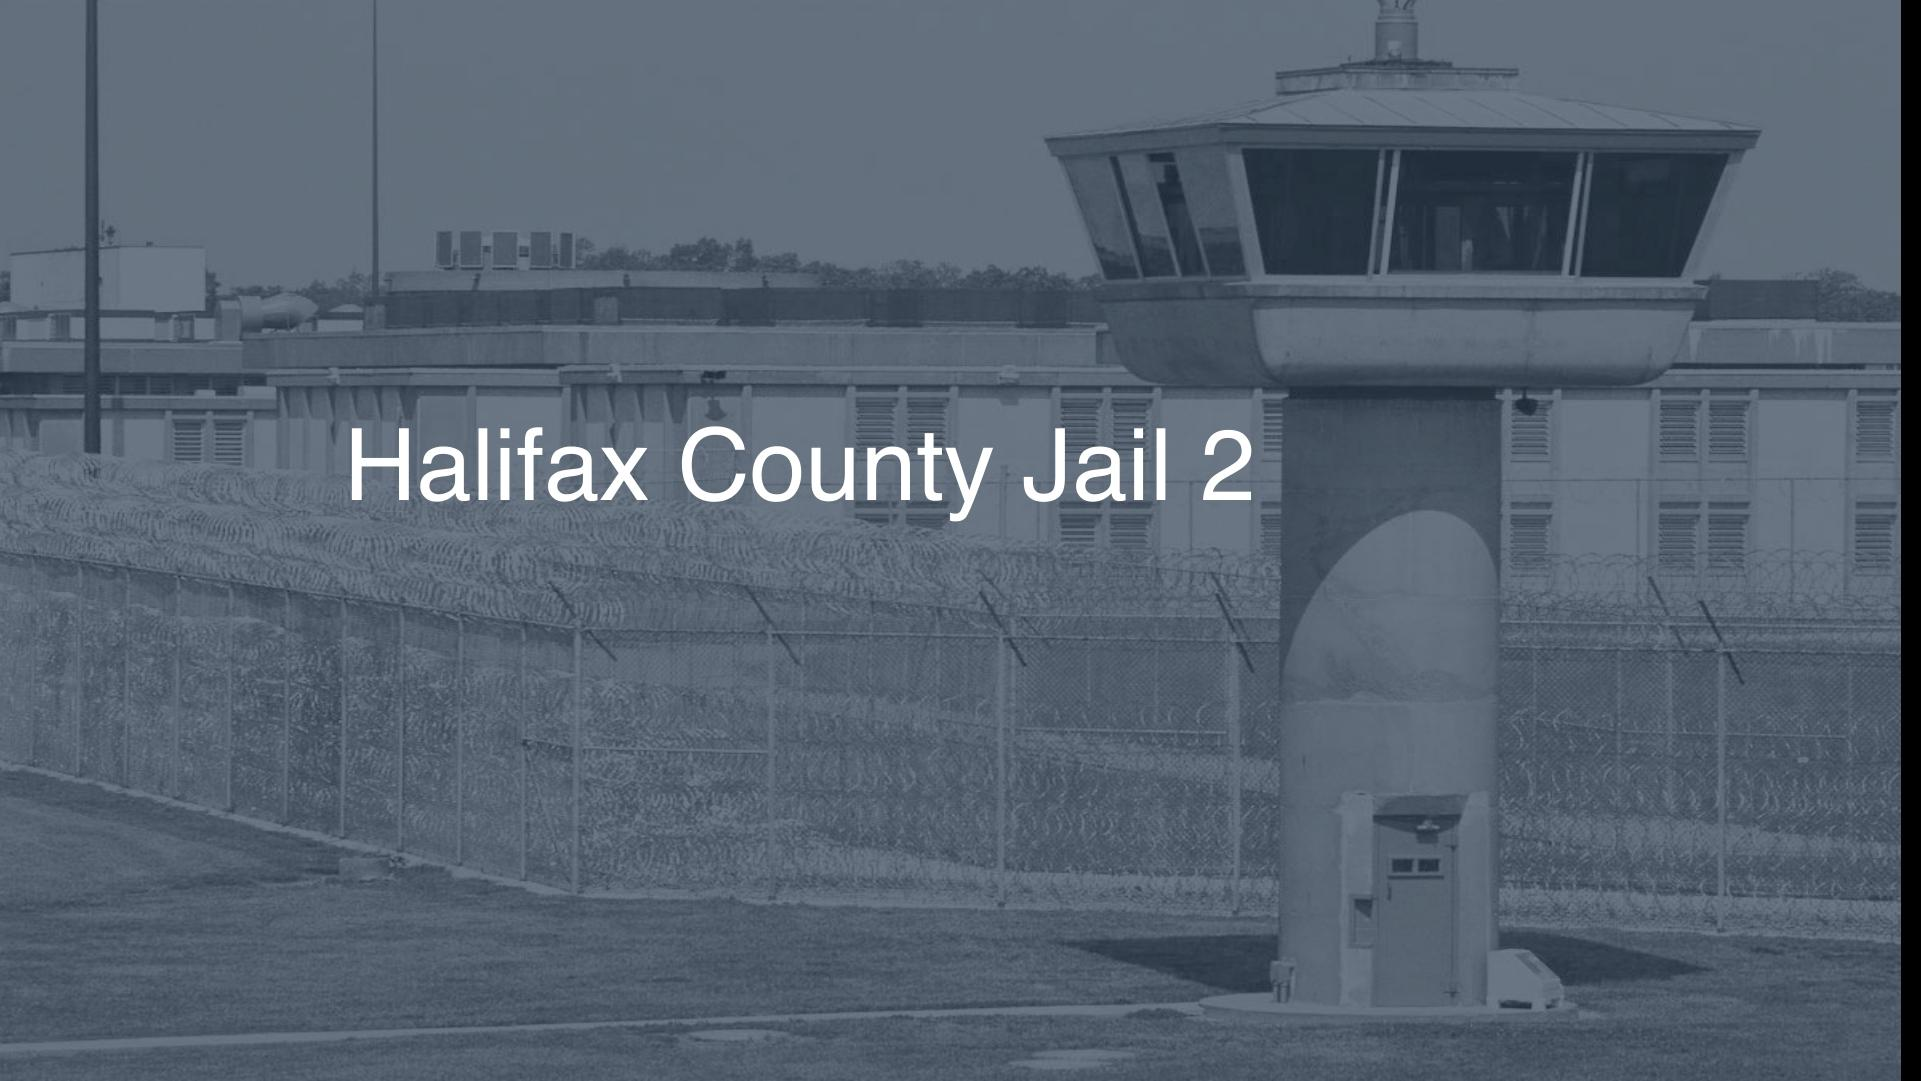 Halifax County Jail | Pigeonly - Inmate Search, Locate